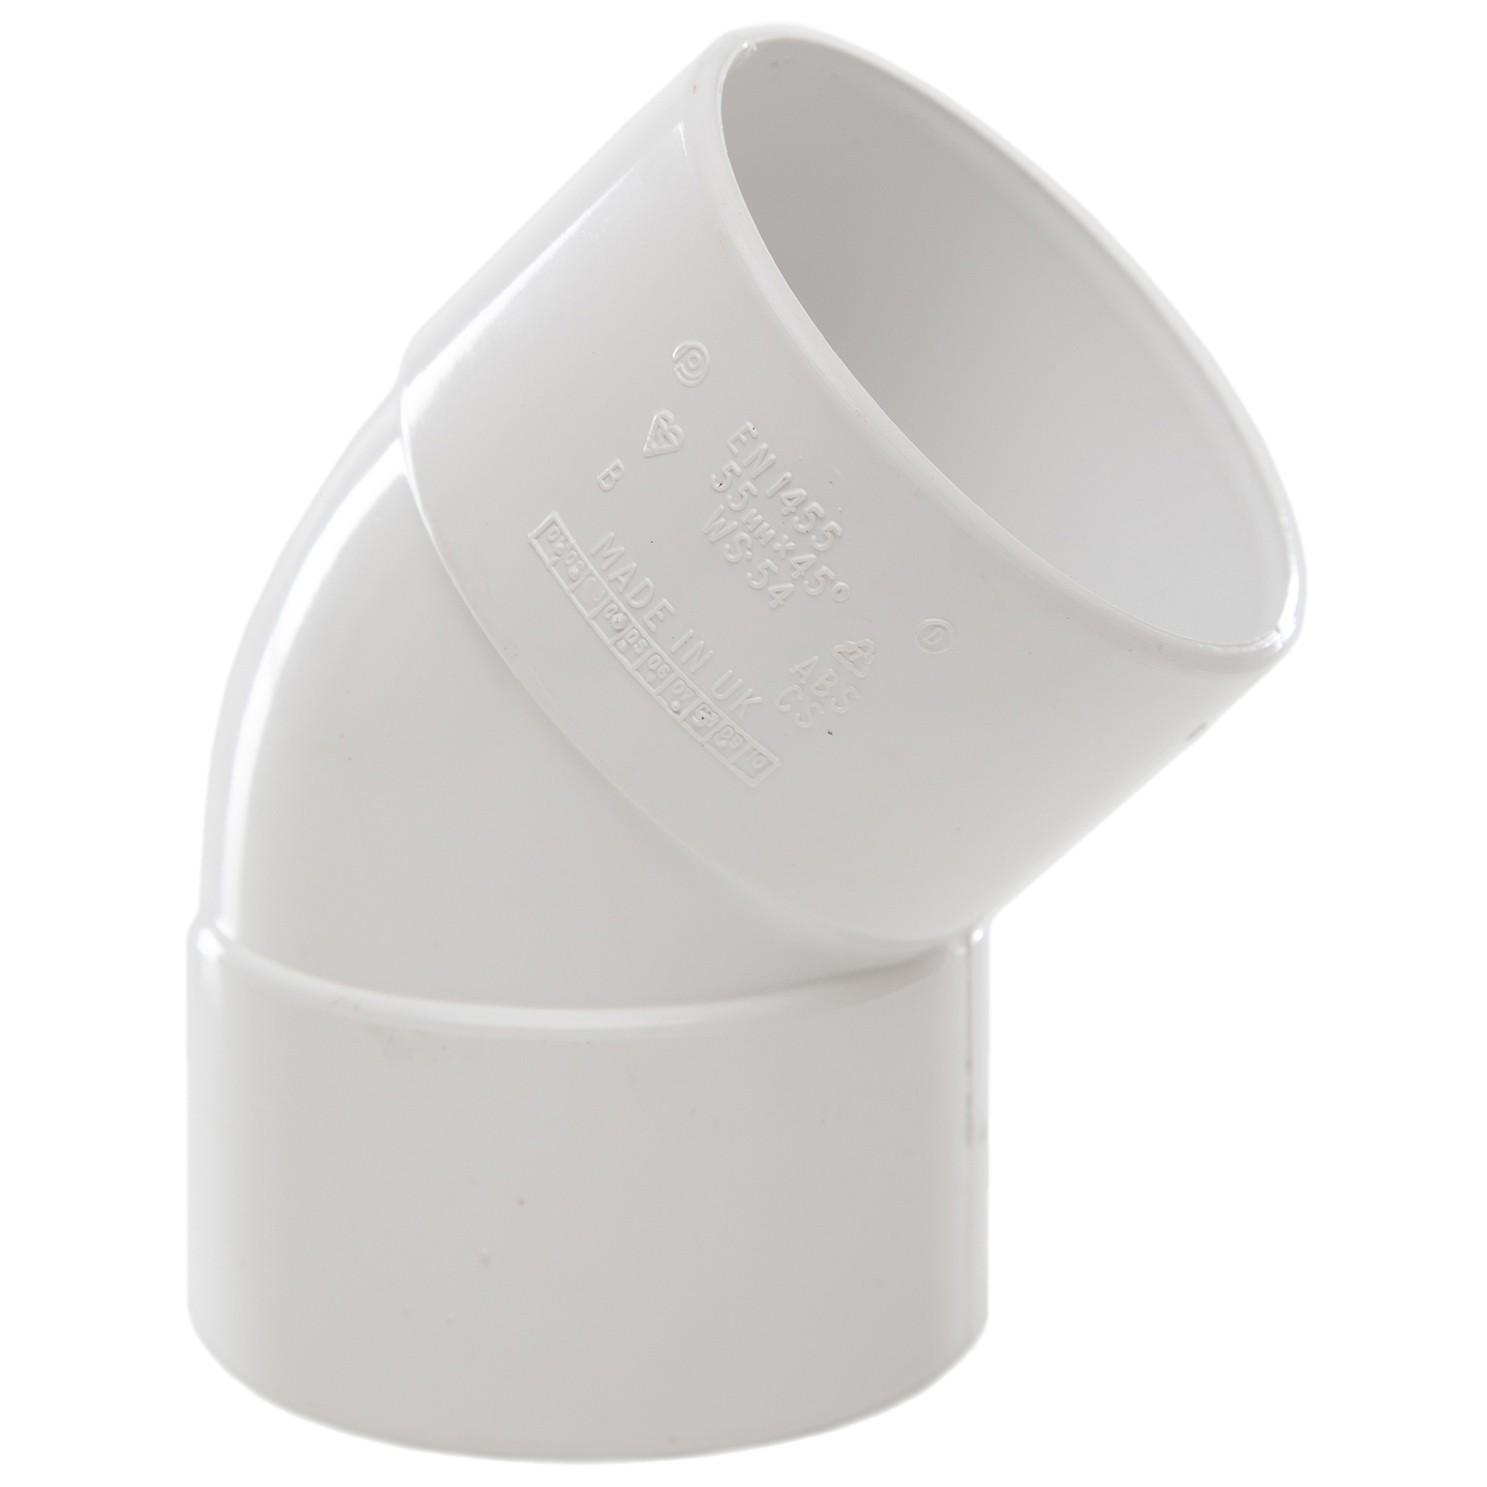 Polypipe 50mm Solvent Weld Waste 45 Degree Obtuse Bend - White